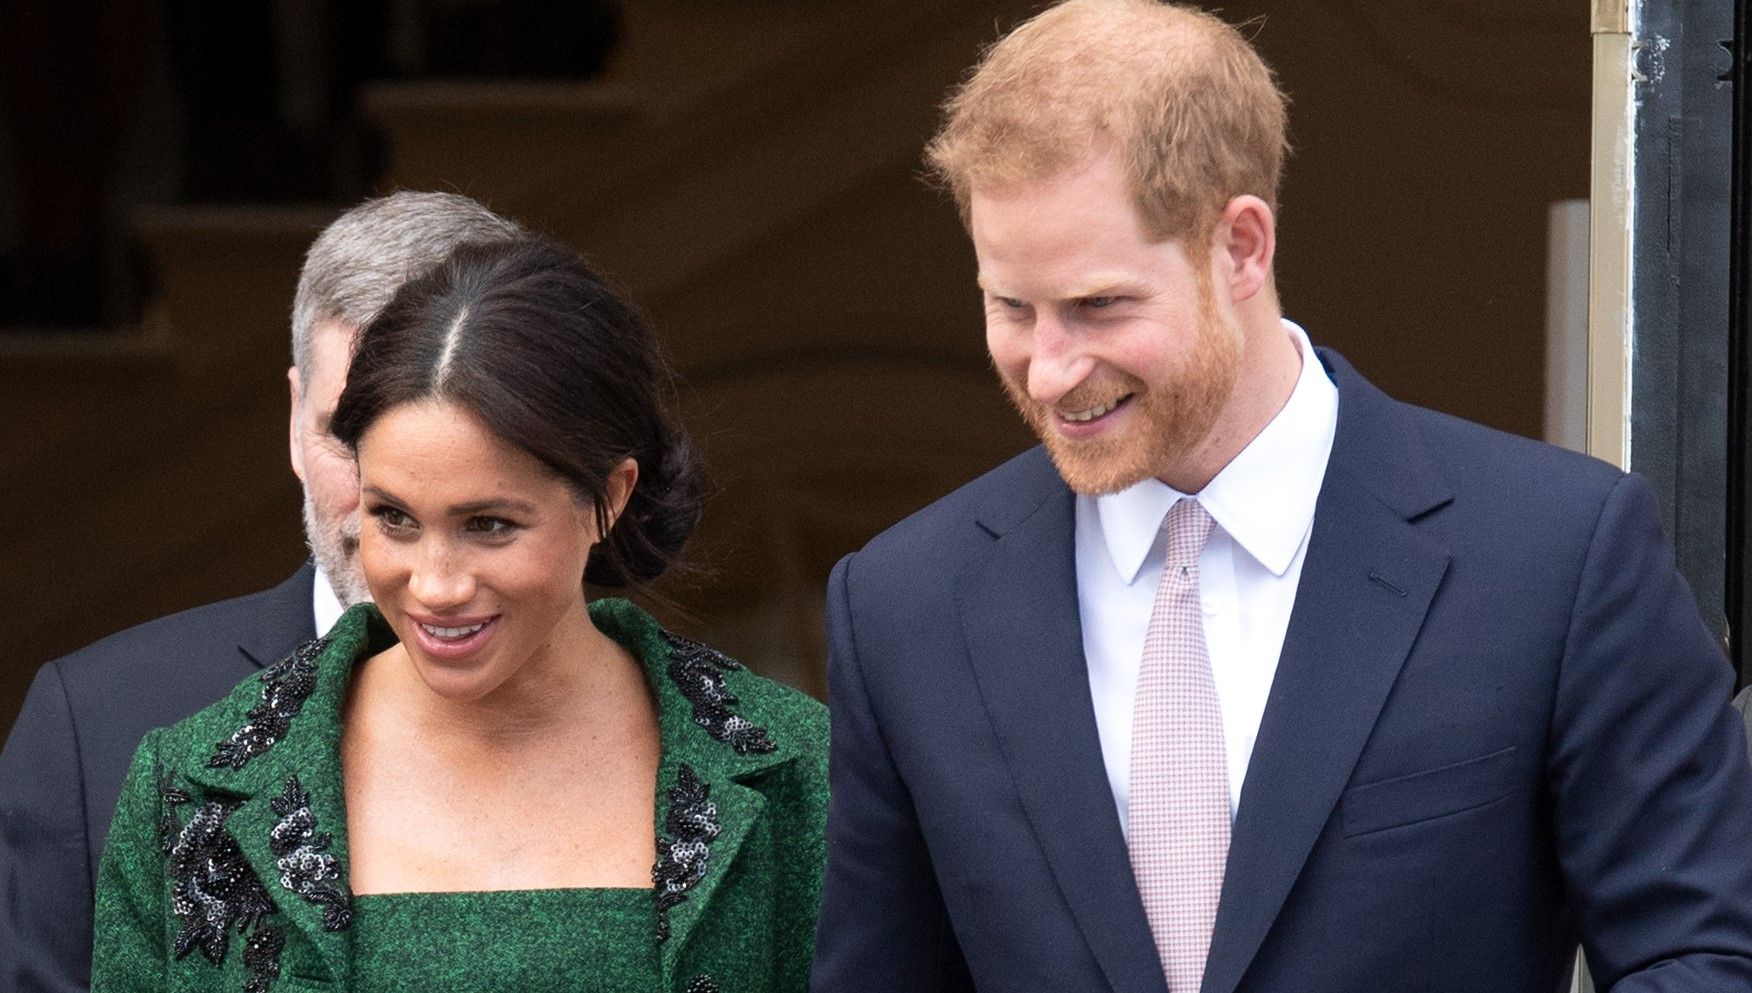 Meghan and Harry's latest Instagram post sparks heated debate among furious fans